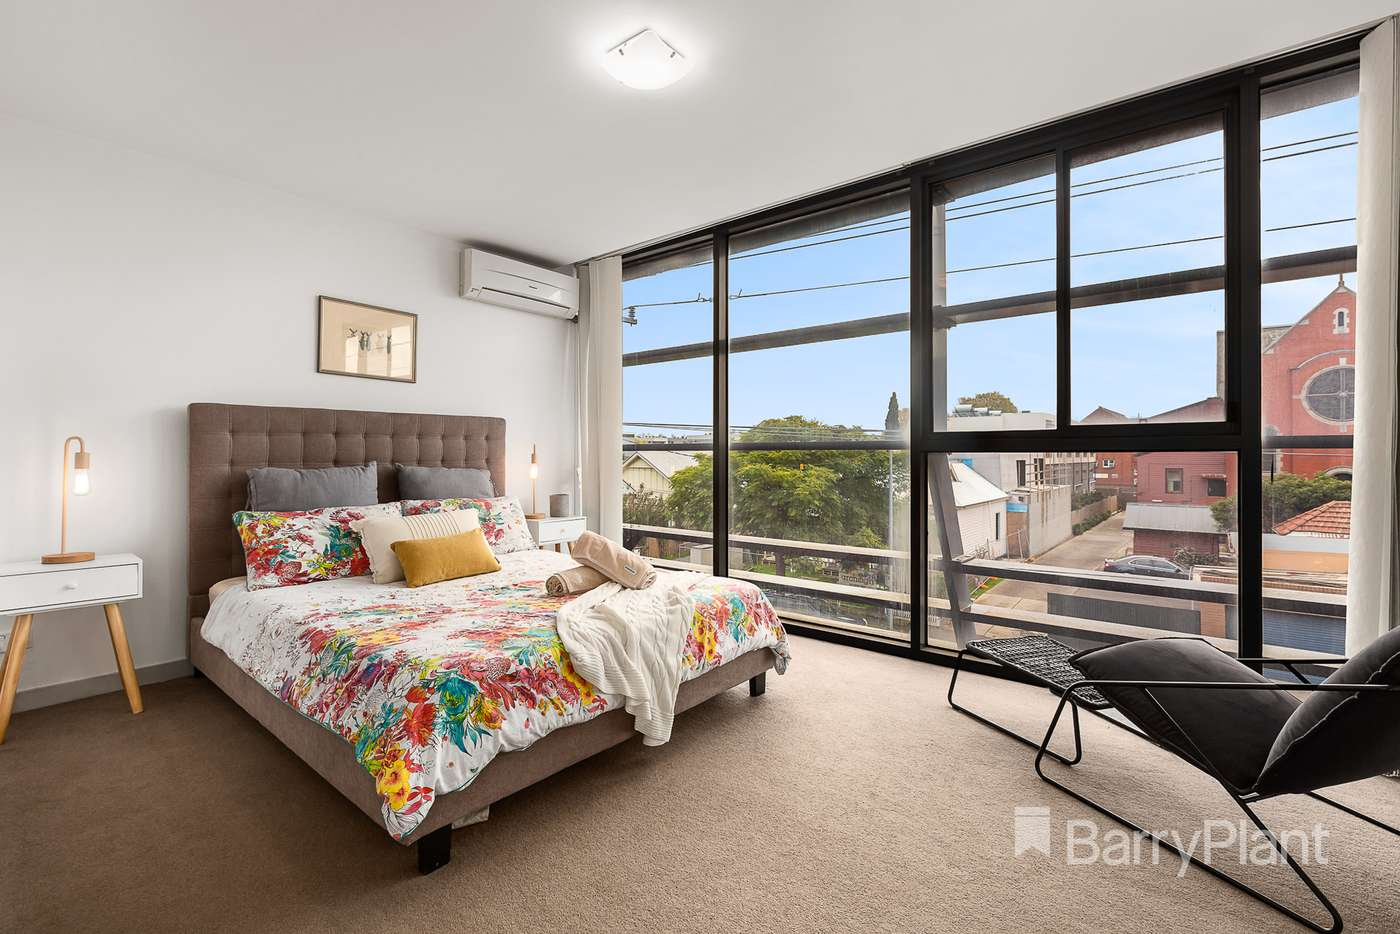 Sixth view of Homely townhouse listing, 2 Barkly Street, Brunswick East VIC 3057